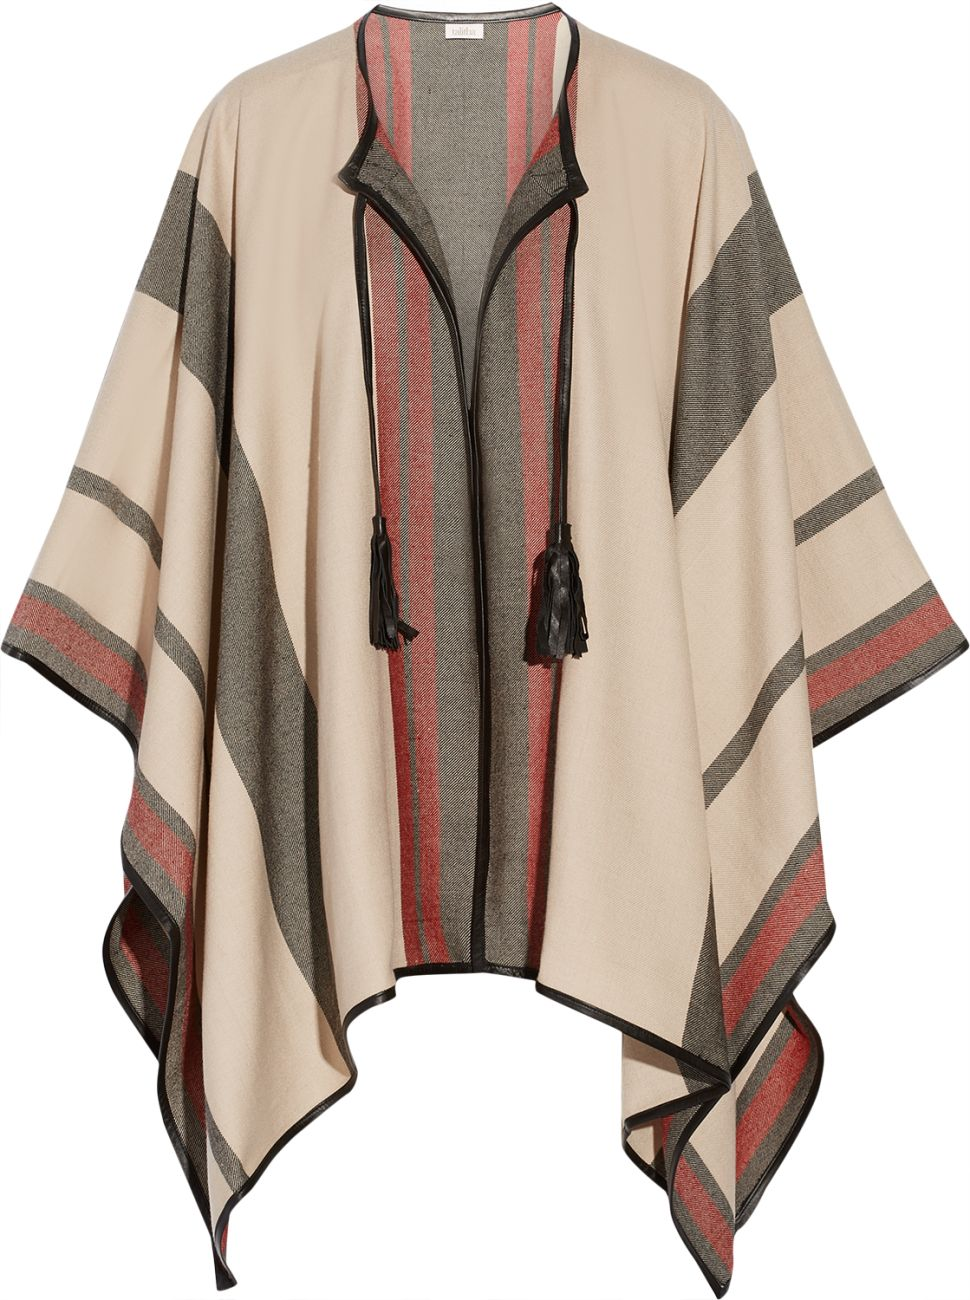 This Cape Is the Perfect Piece of Autumnal Outerwear